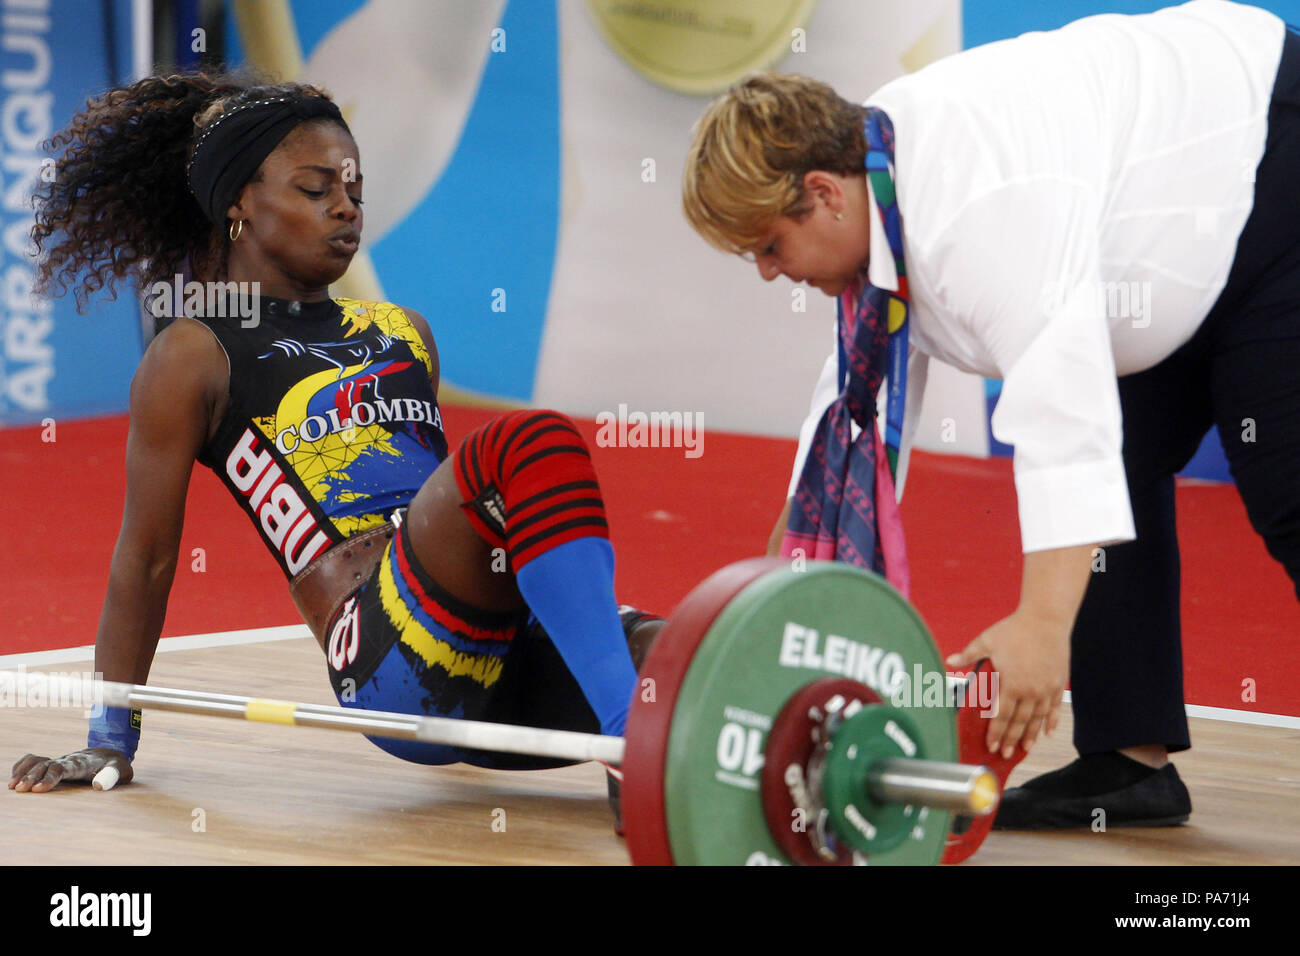 Barranquilla, Colombia. 20th July, 2018. Colombian Ana Iris Segura (L) receives medical attention after competing at 48kg women weighlifting during the Central American and Caribbean Games 2018, in Barranquilla, Colombia, 20 July 2018. Segura won the gold medal in 97kg. Credit: Luis Eduardo Noriega A./EFE/Alamy Live News - Stock Image